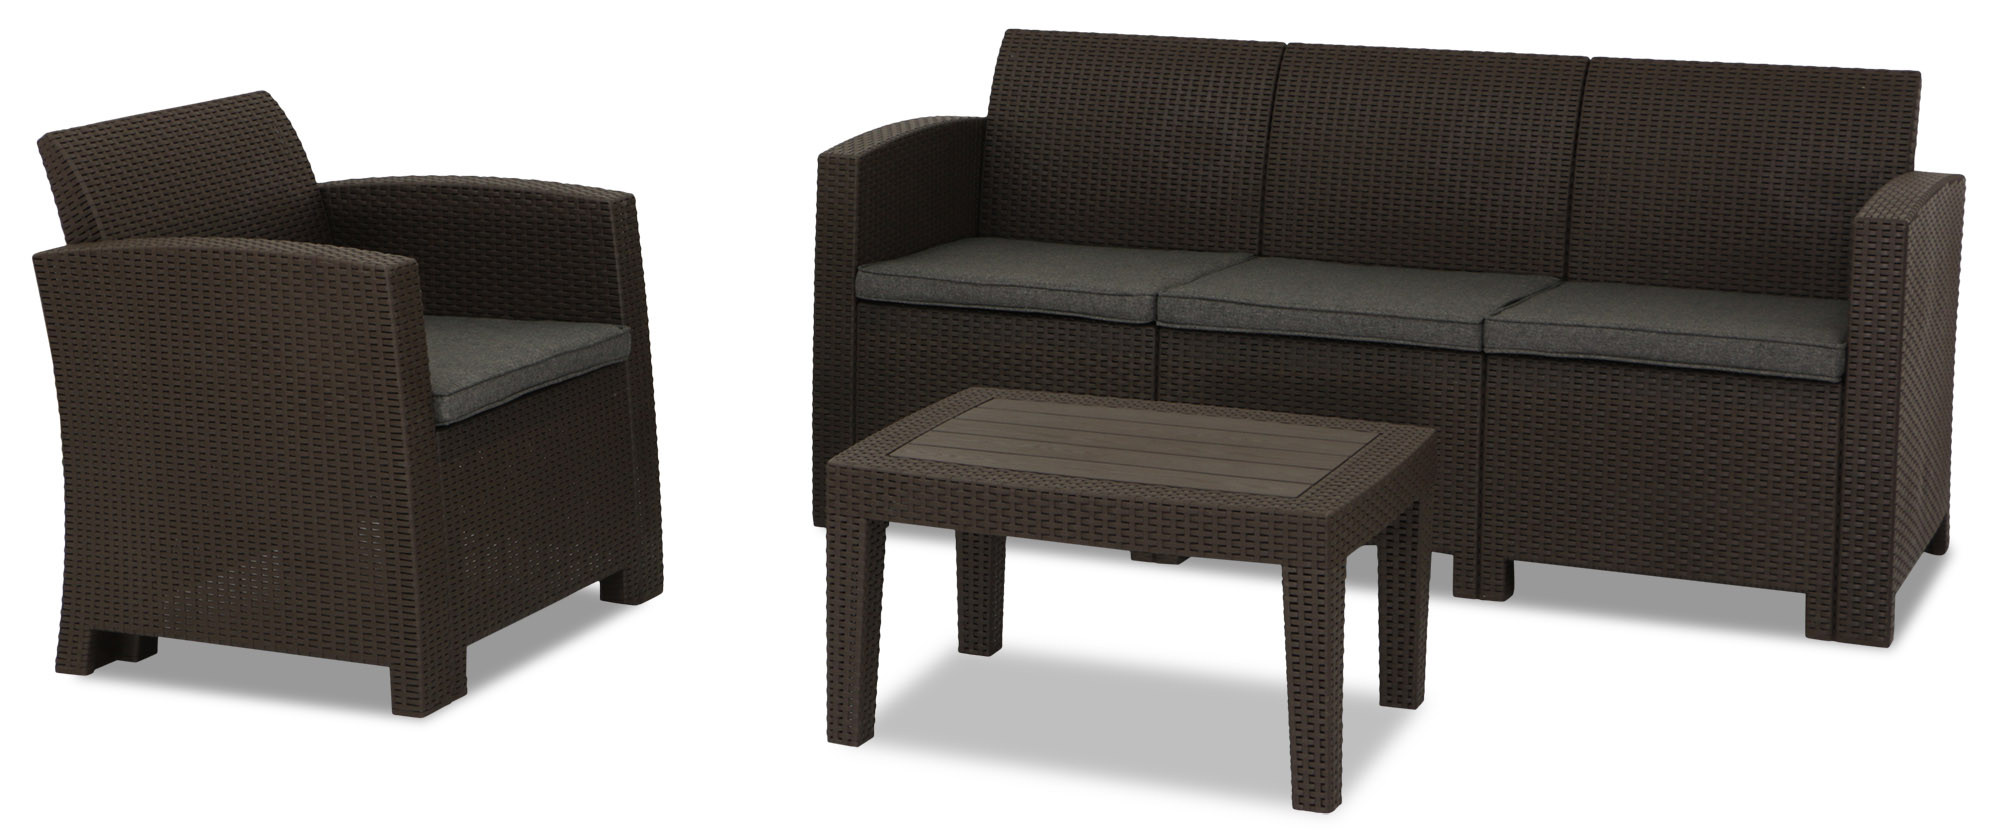 outdoor sofa singapore cleaning polyester covers nina 5 seater set brown furniture and home